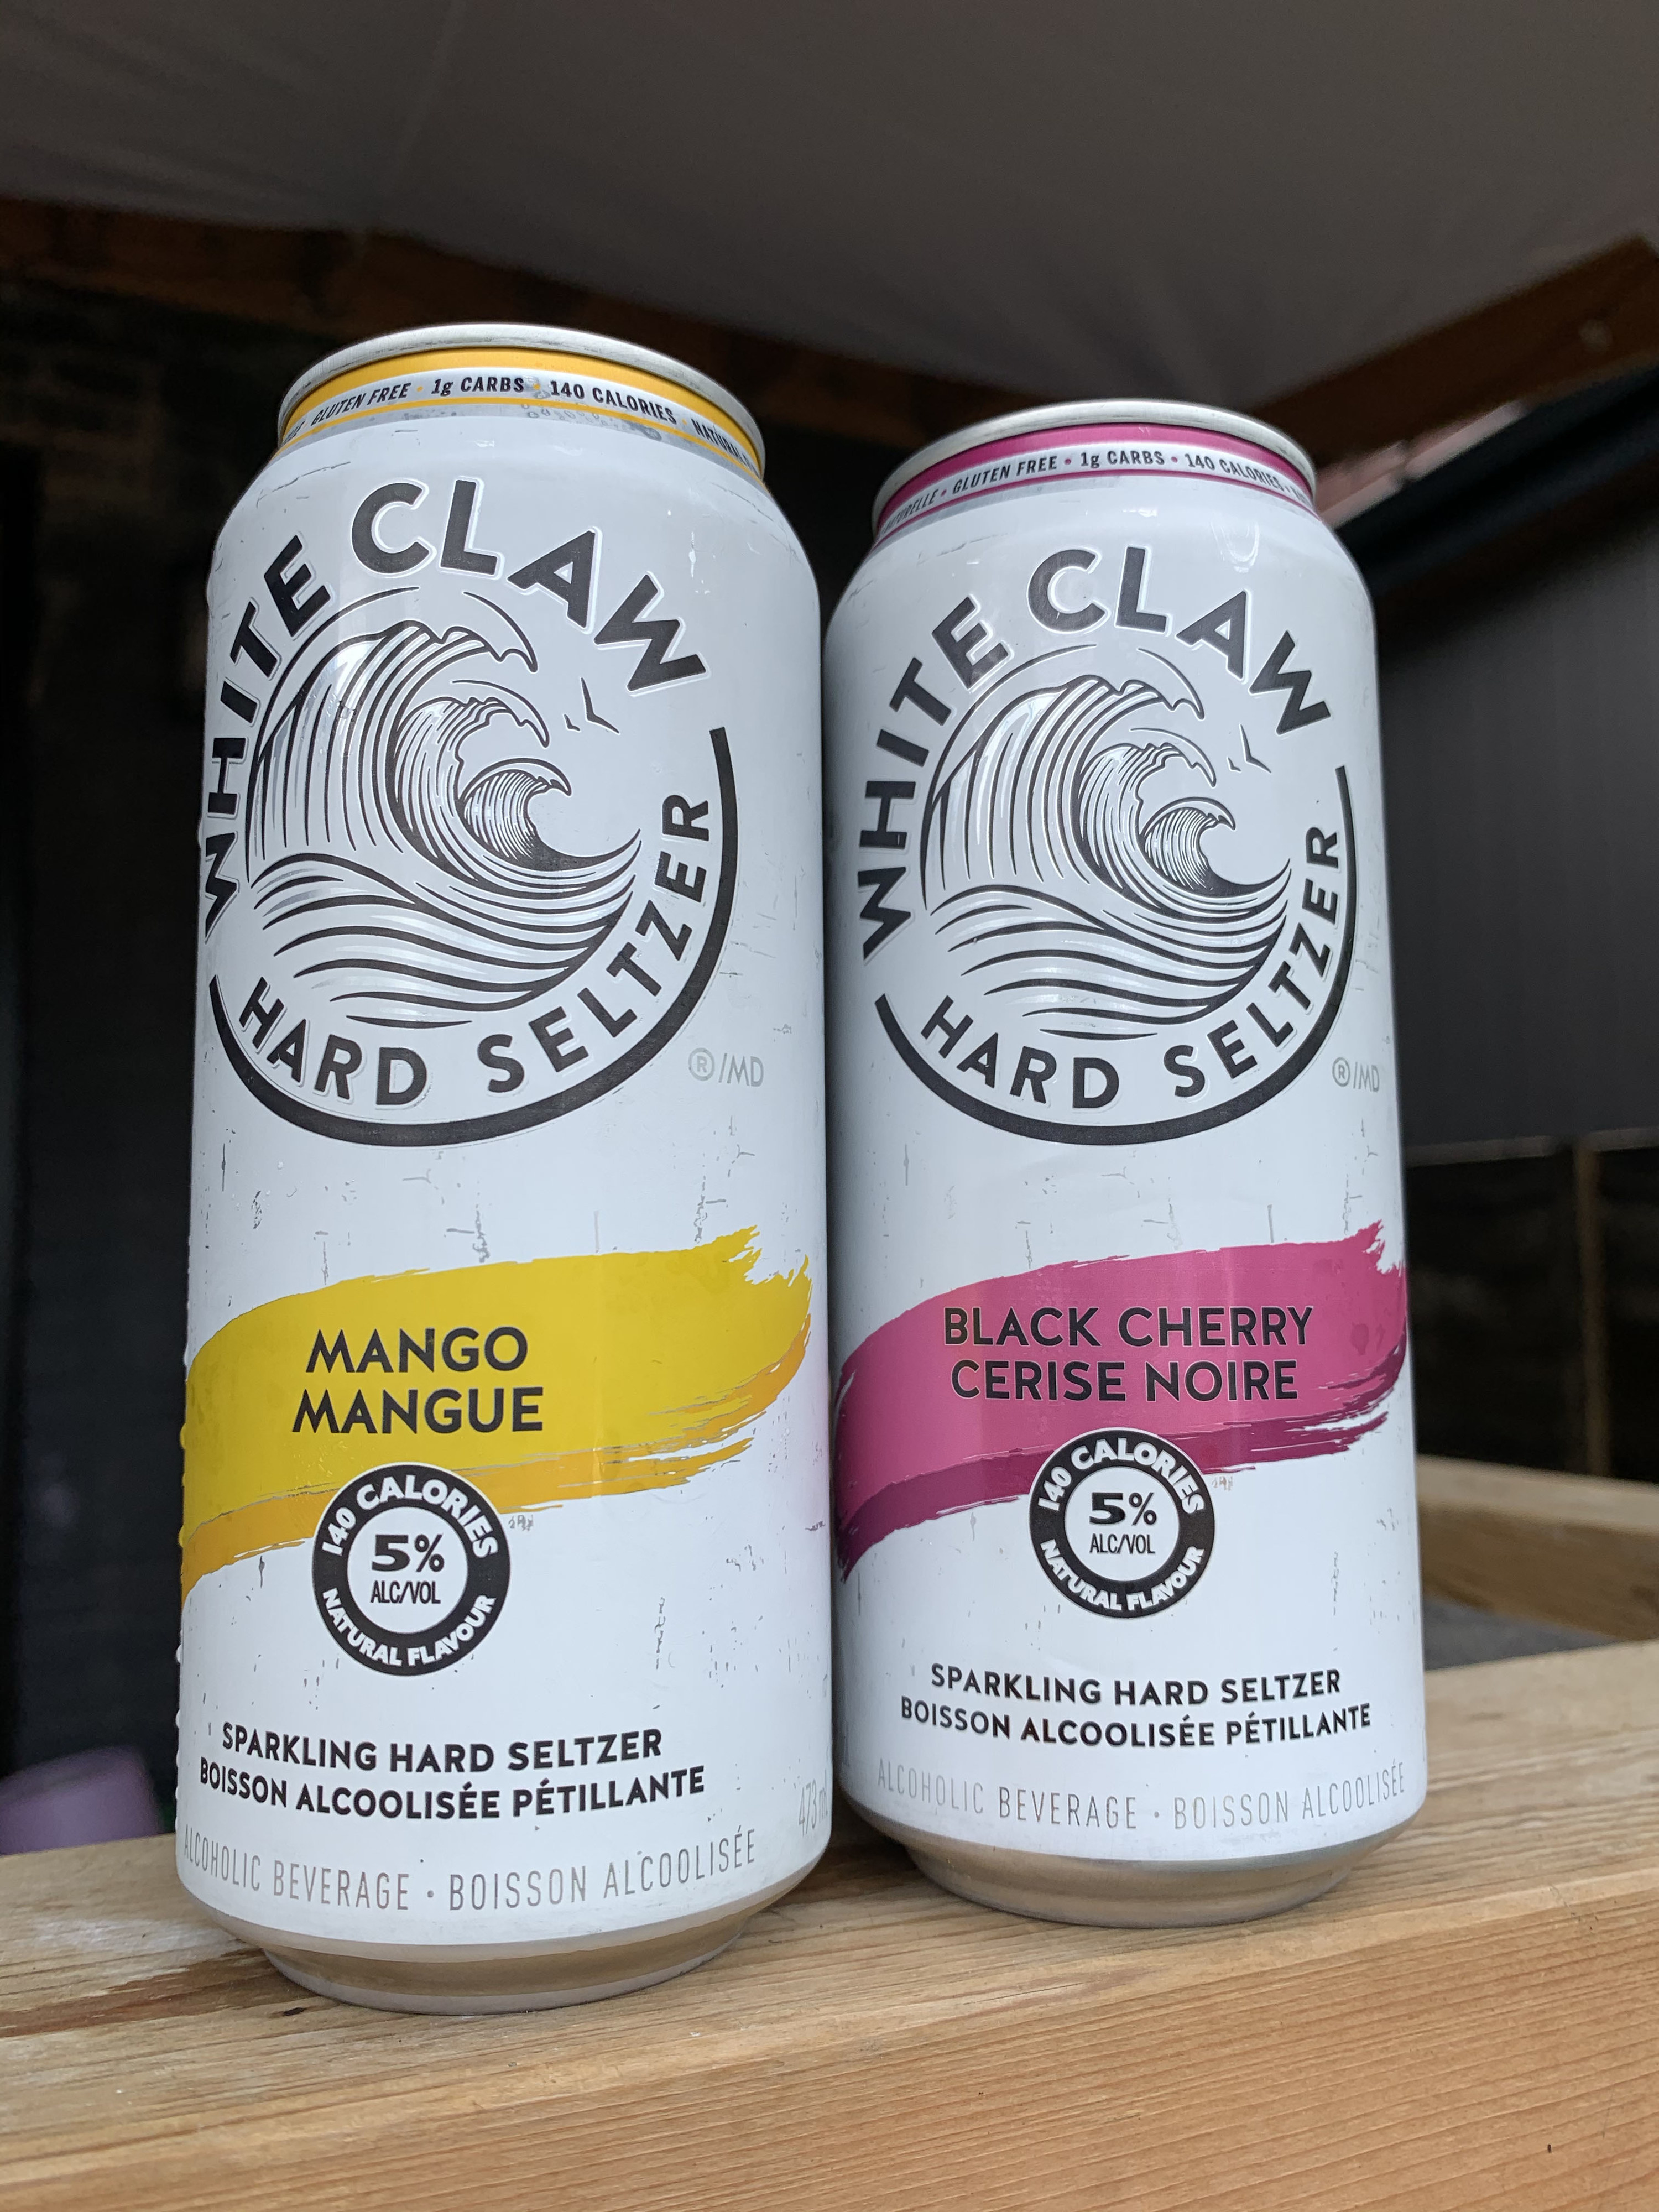 Two cans of White Claw Hard Seltzer, one says mango and one says black cherry.